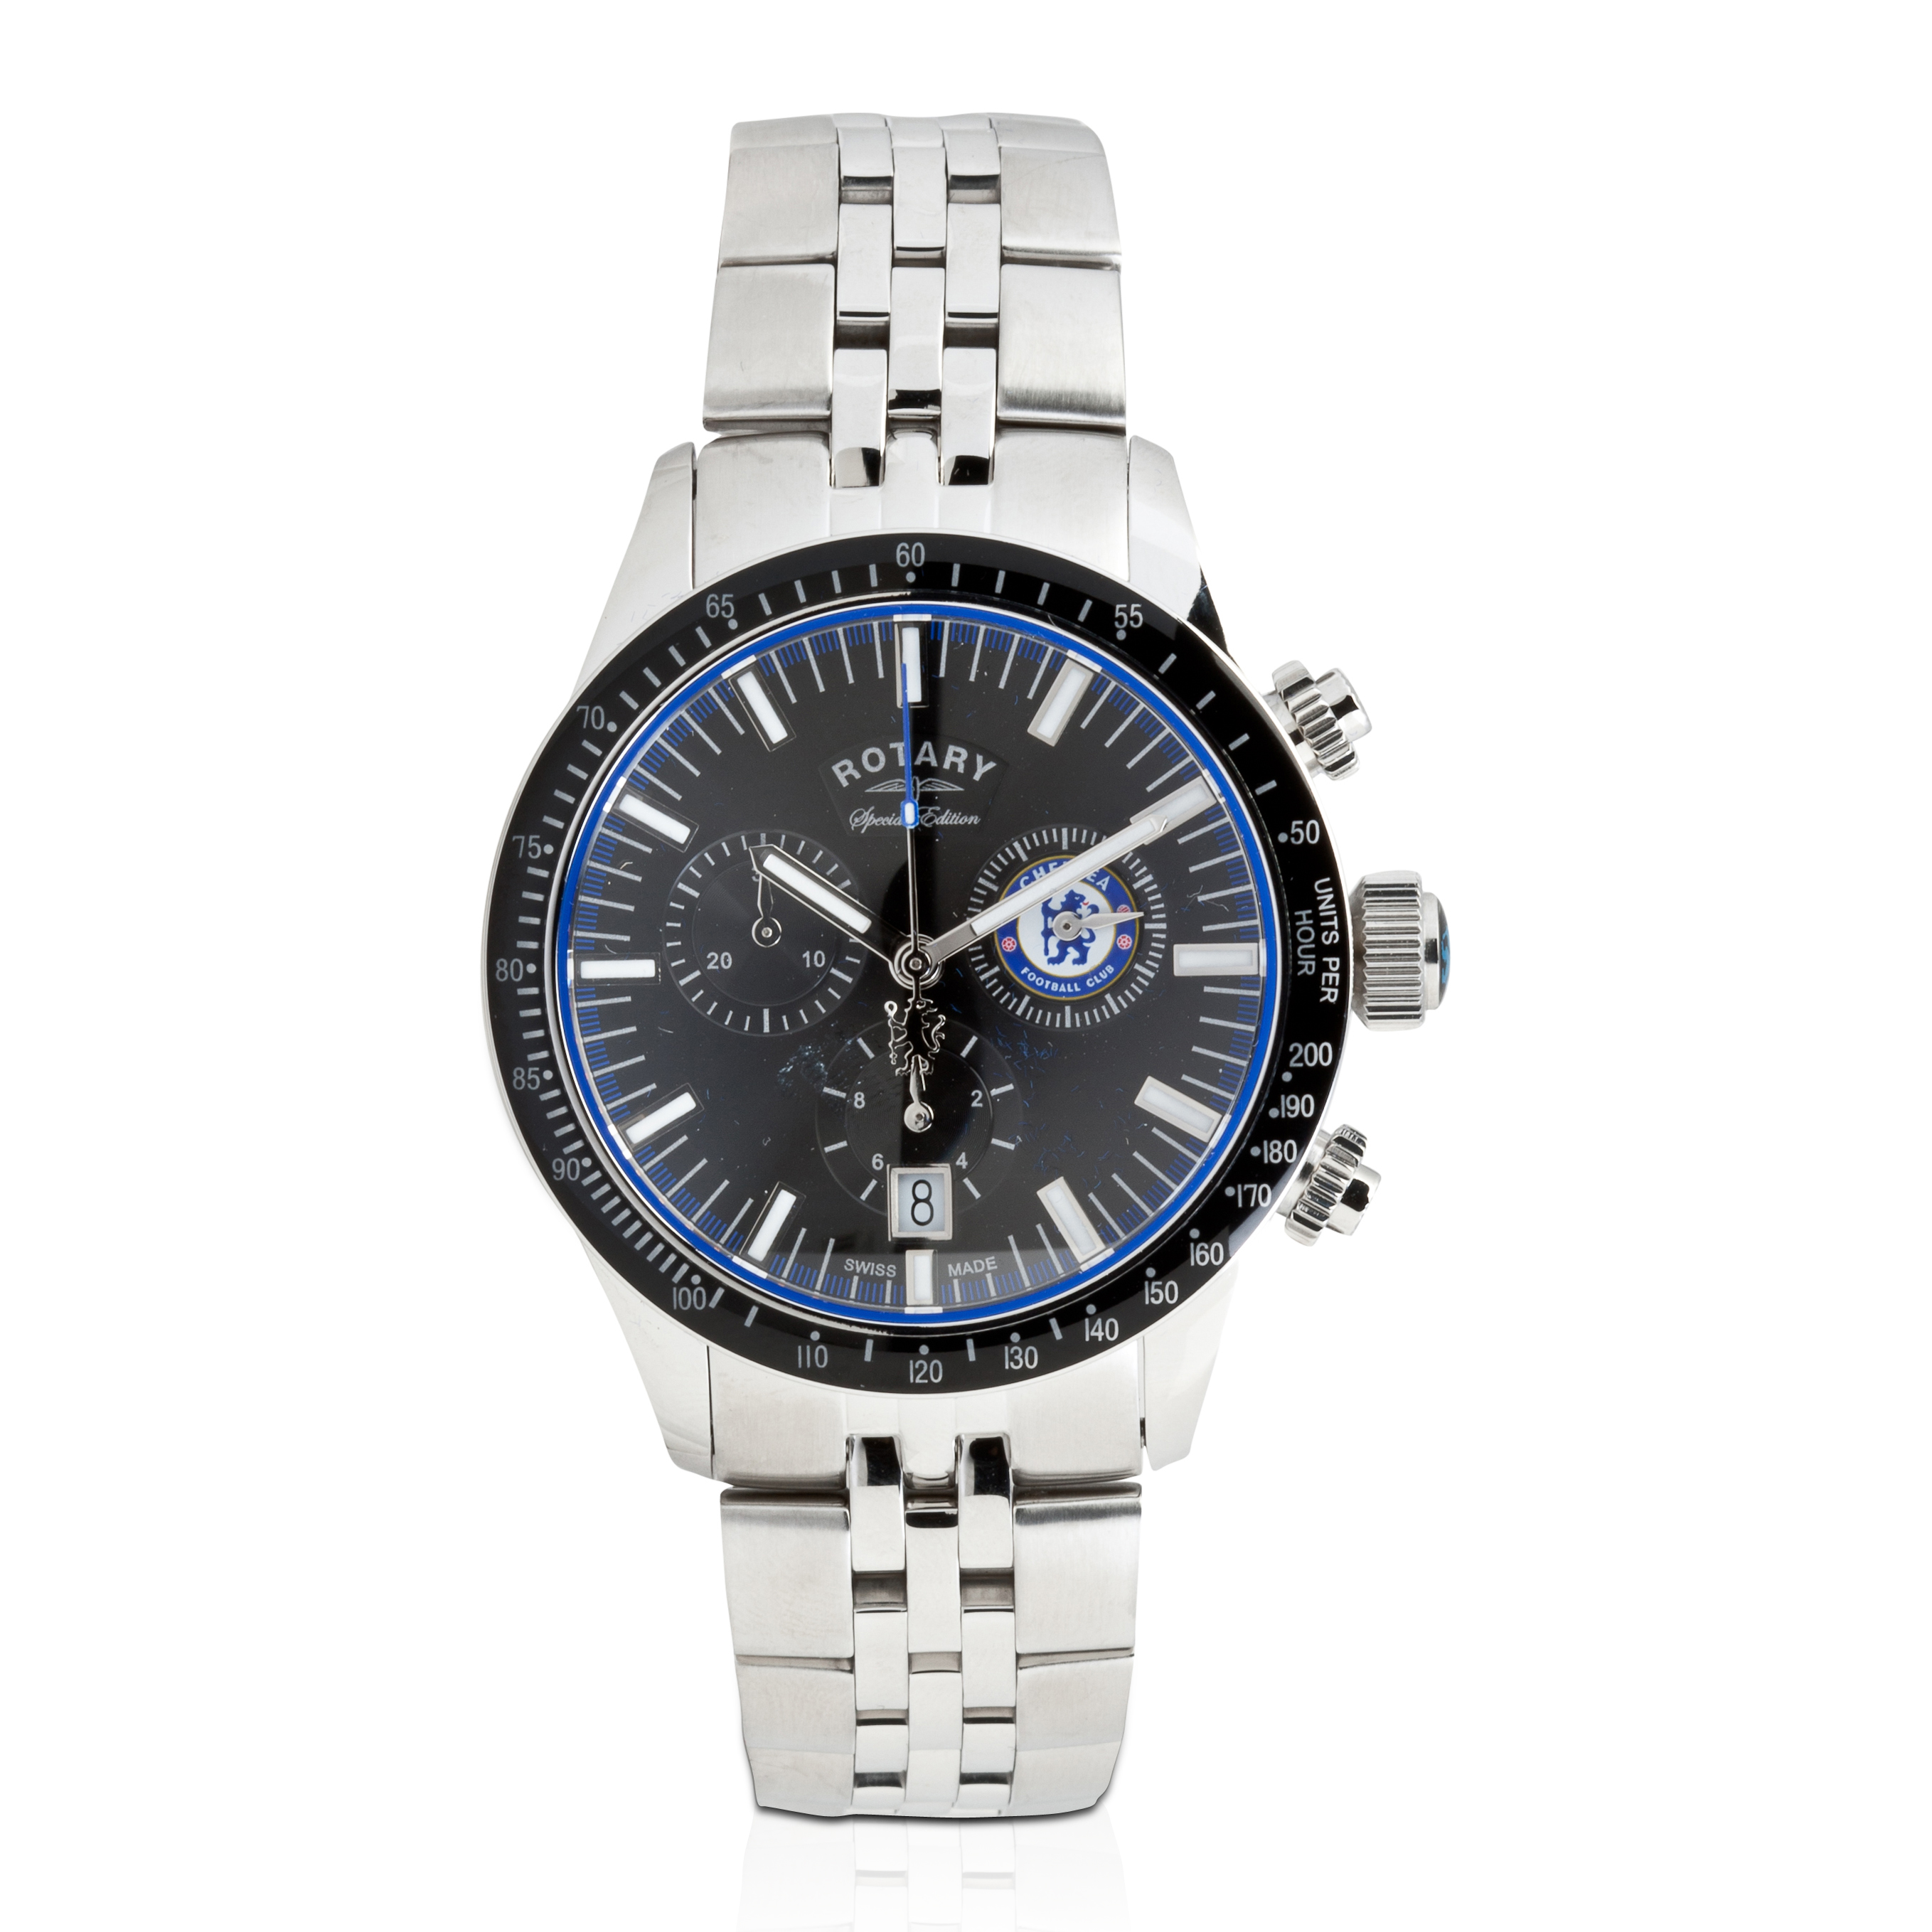 Chelsea 2013/14 Special Edition Rotary Stainless Steel Strap Watch